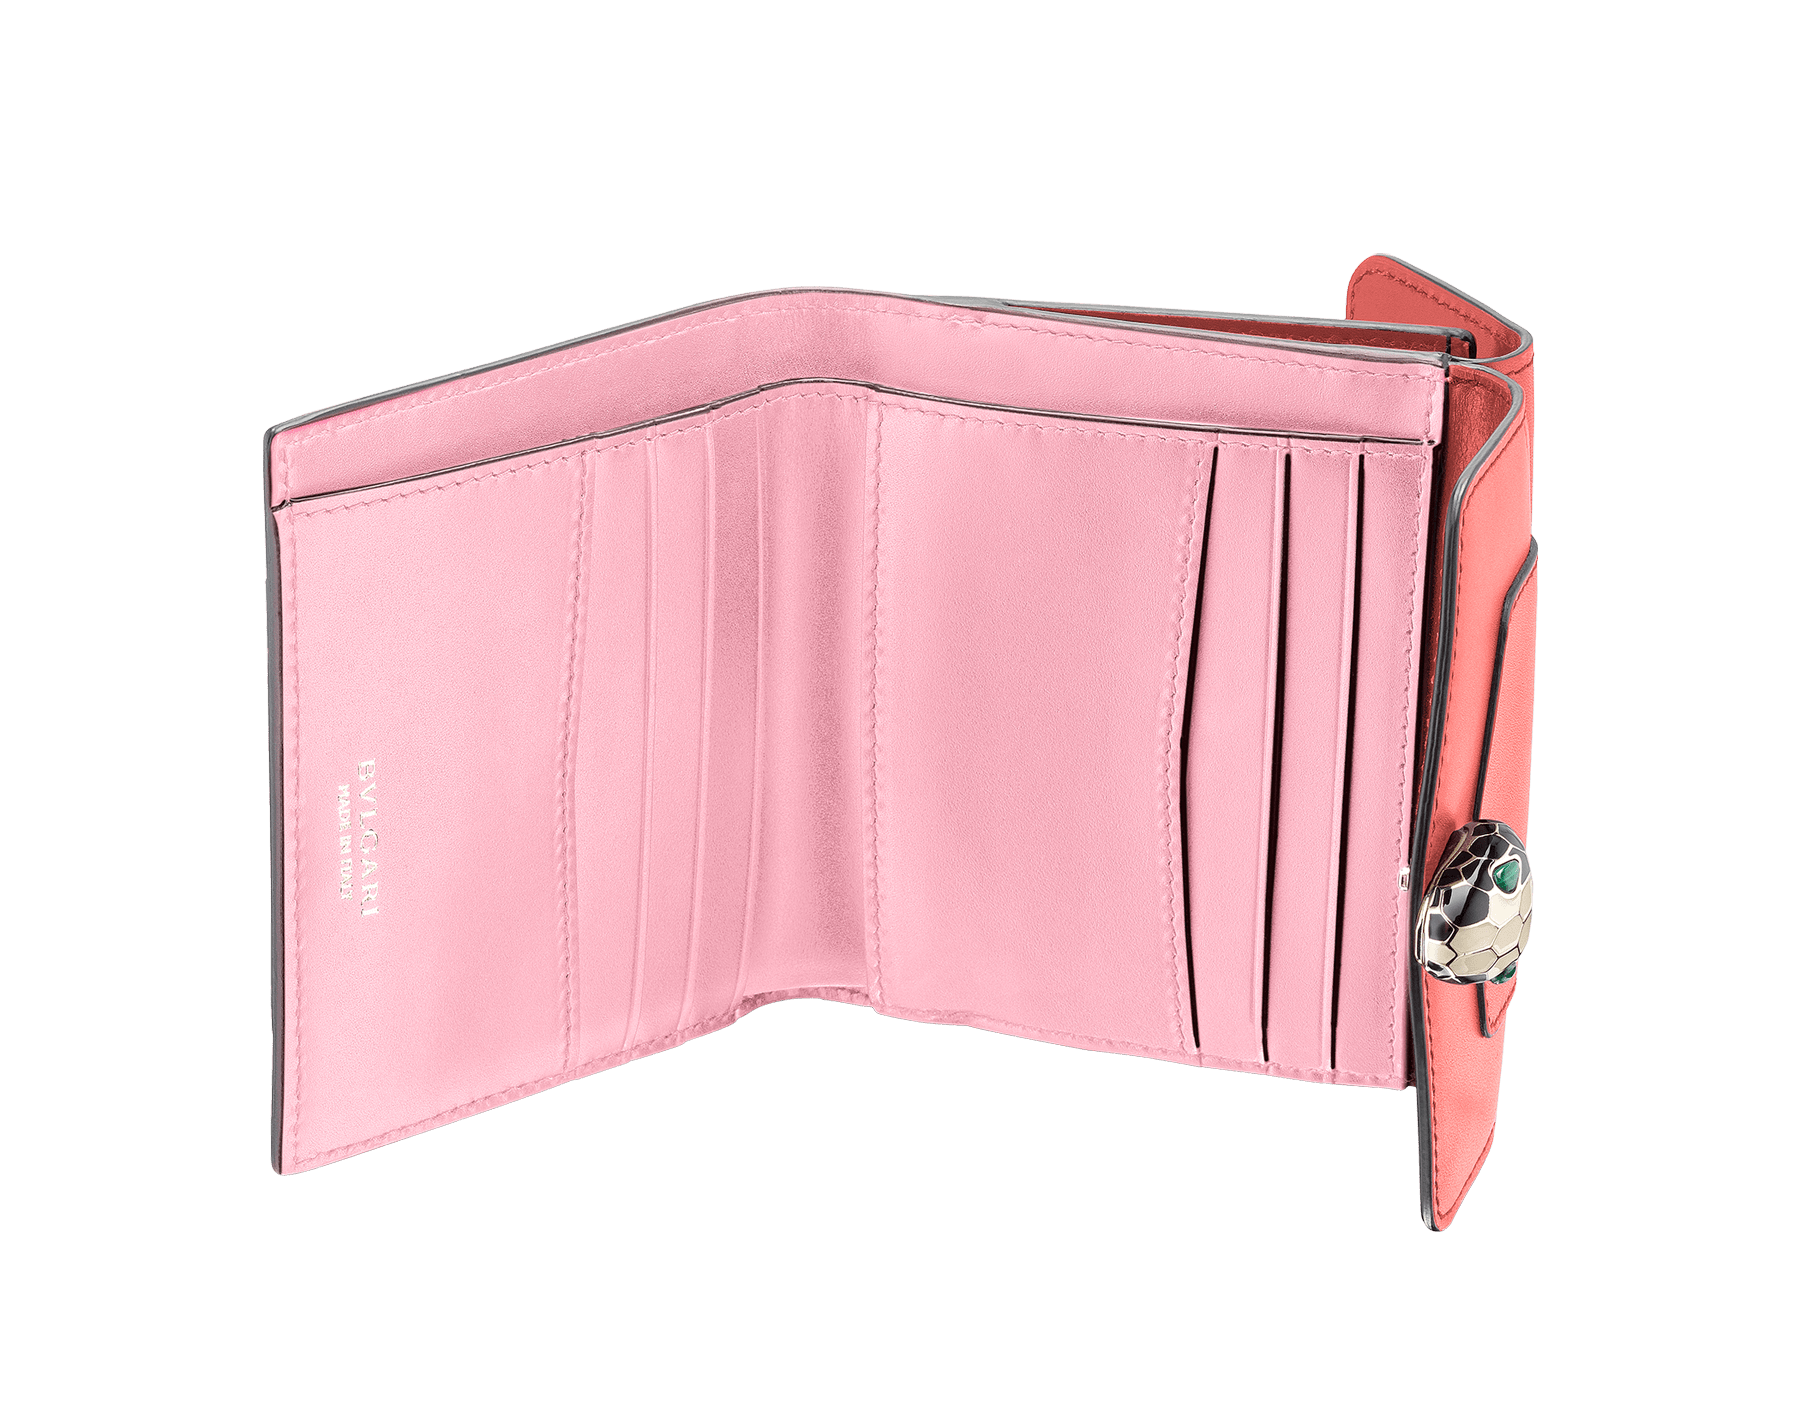 Serpenti Forever square compact wallet in silky coral and flamingo quartz calf leather. Iconic snake head stud closure in black and white enamel, with green malachite eyes. 288834 image 2